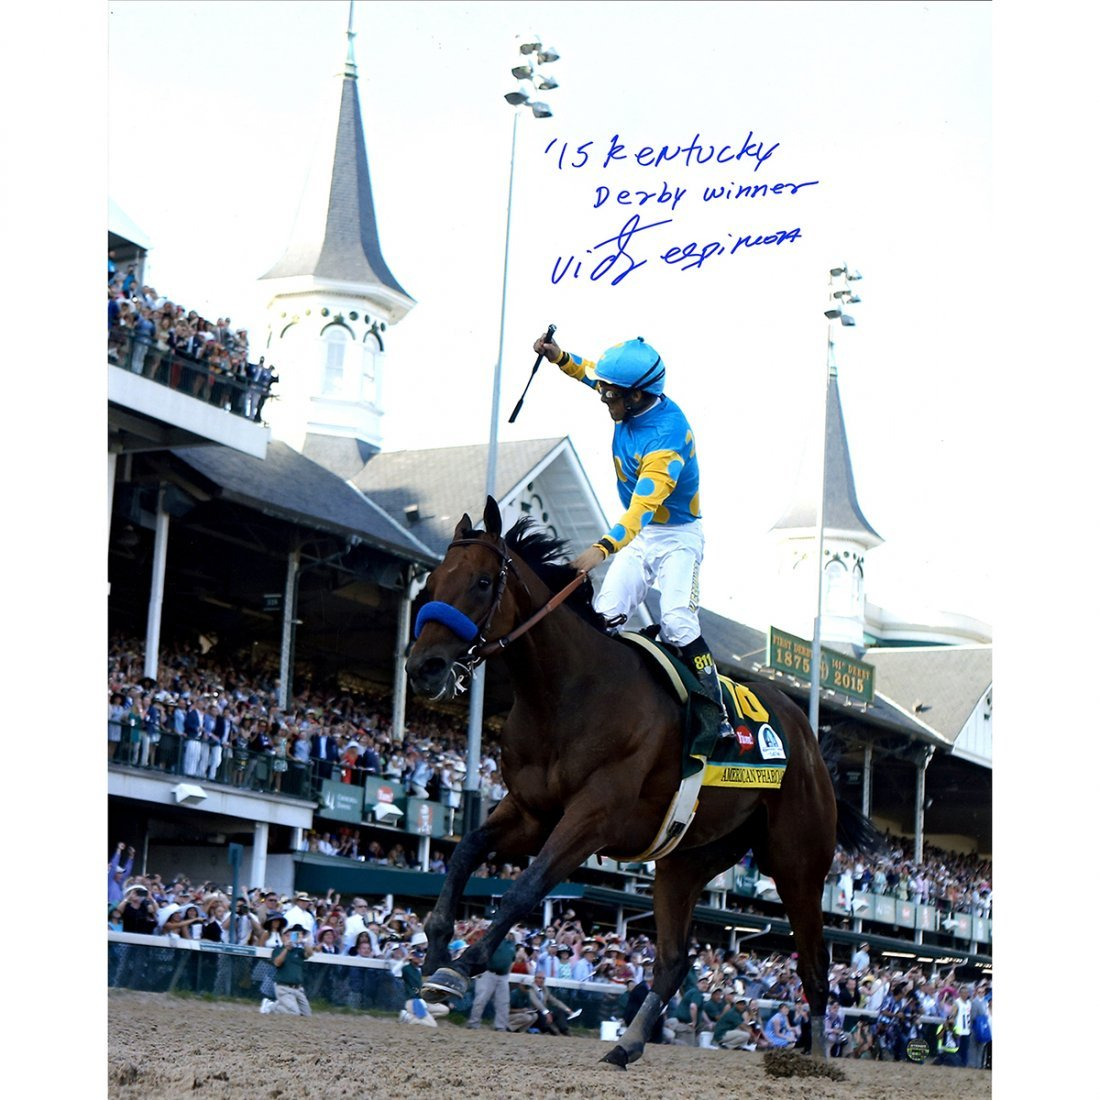 Victor Espinoza Signed 2015 Kentucky Derby 16x20 Photo